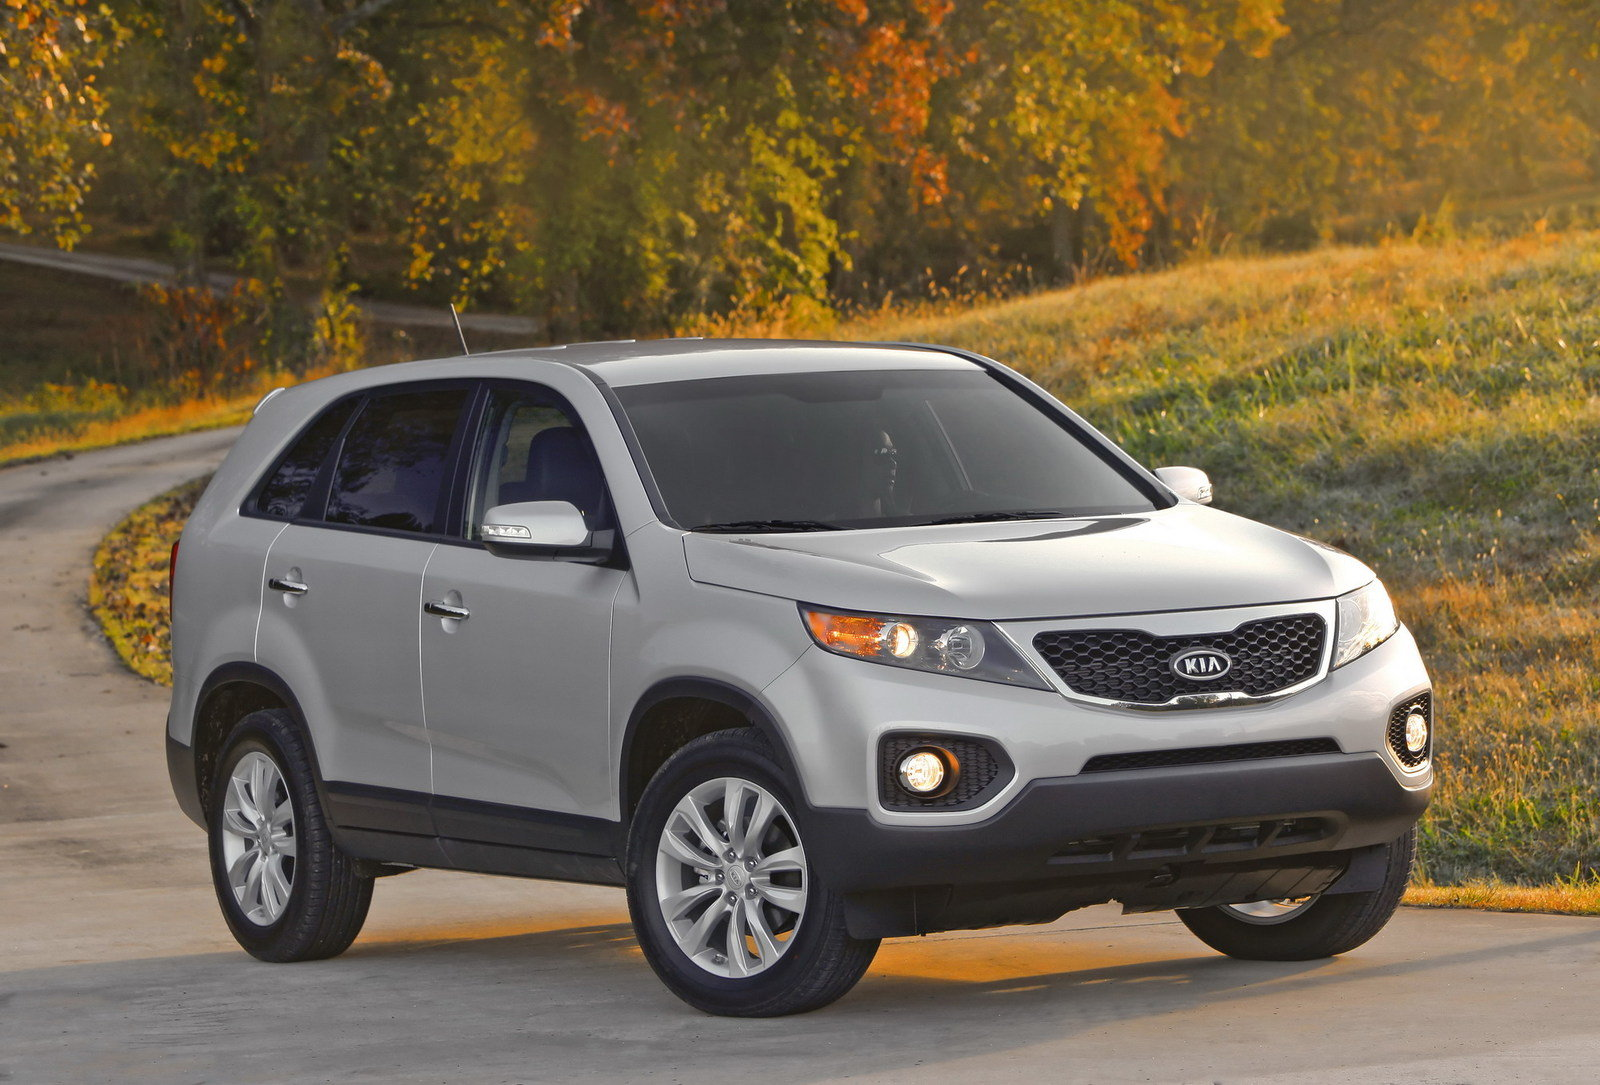 2011 kia sorento picture 336890 car review top speed. Black Bedroom Furniture Sets. Home Design Ideas